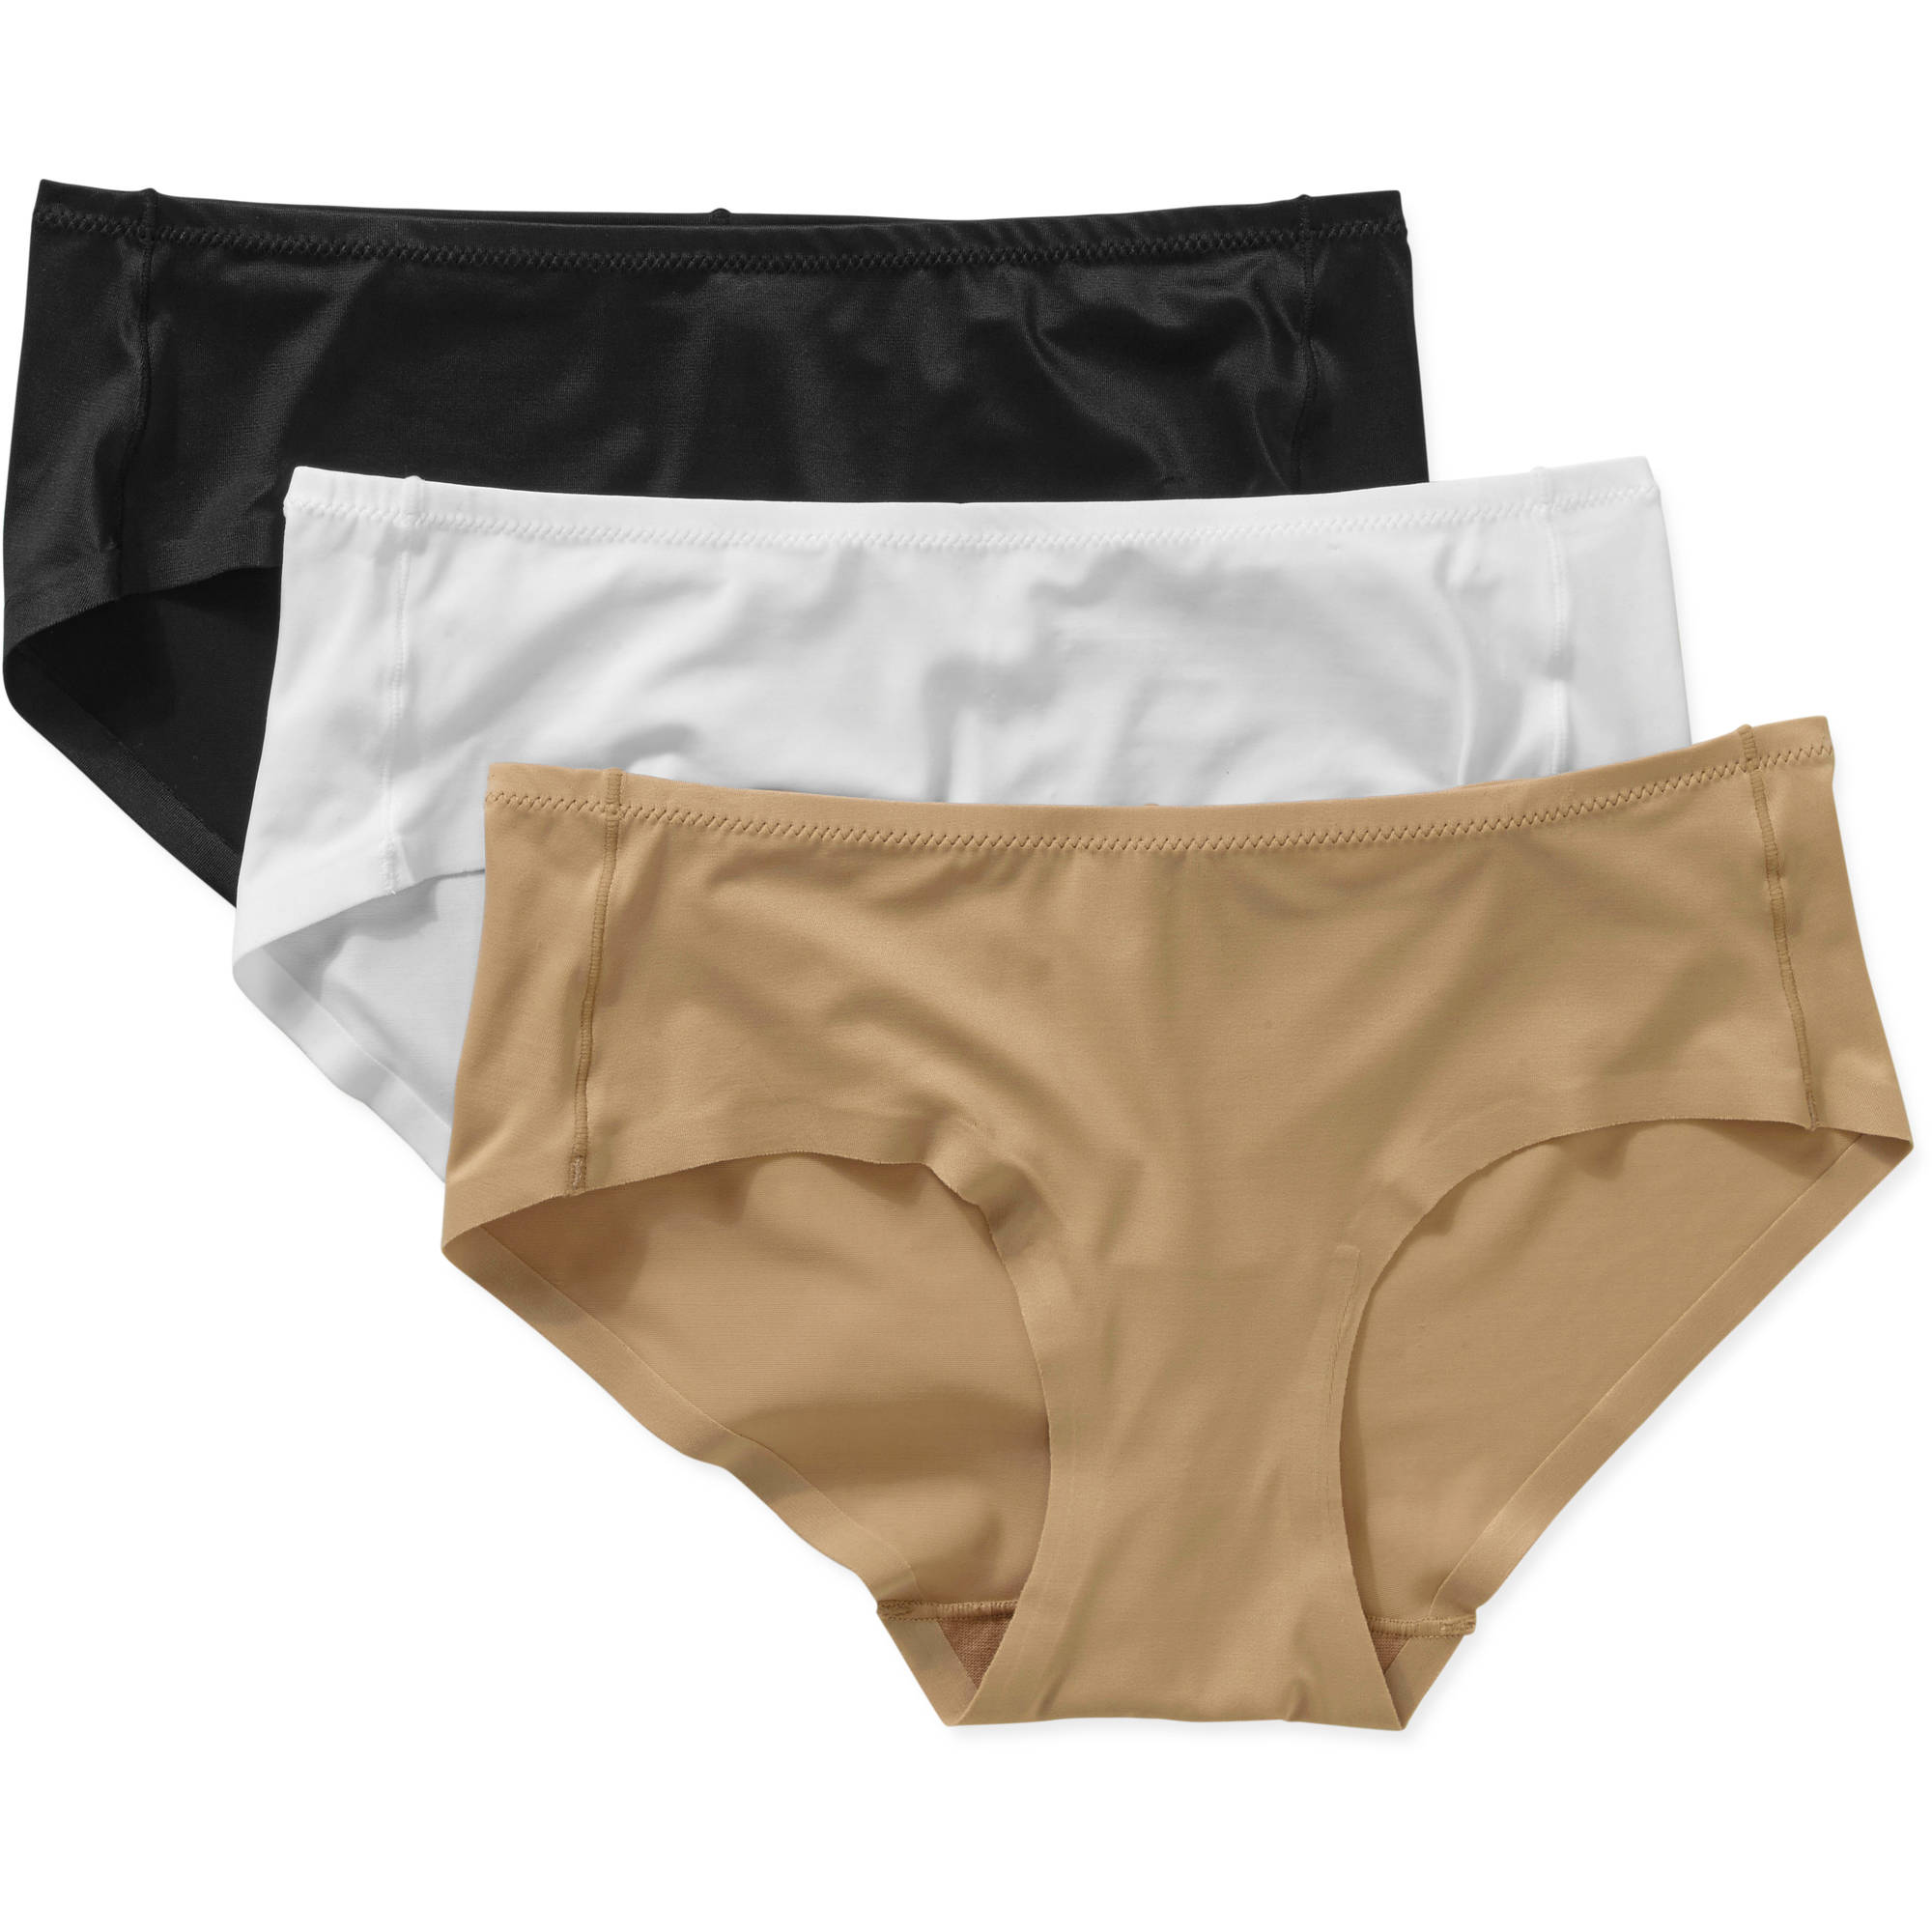 Maidenform Sweet Nothings Comfort Devotion Tailored Hipster - 3 Pack